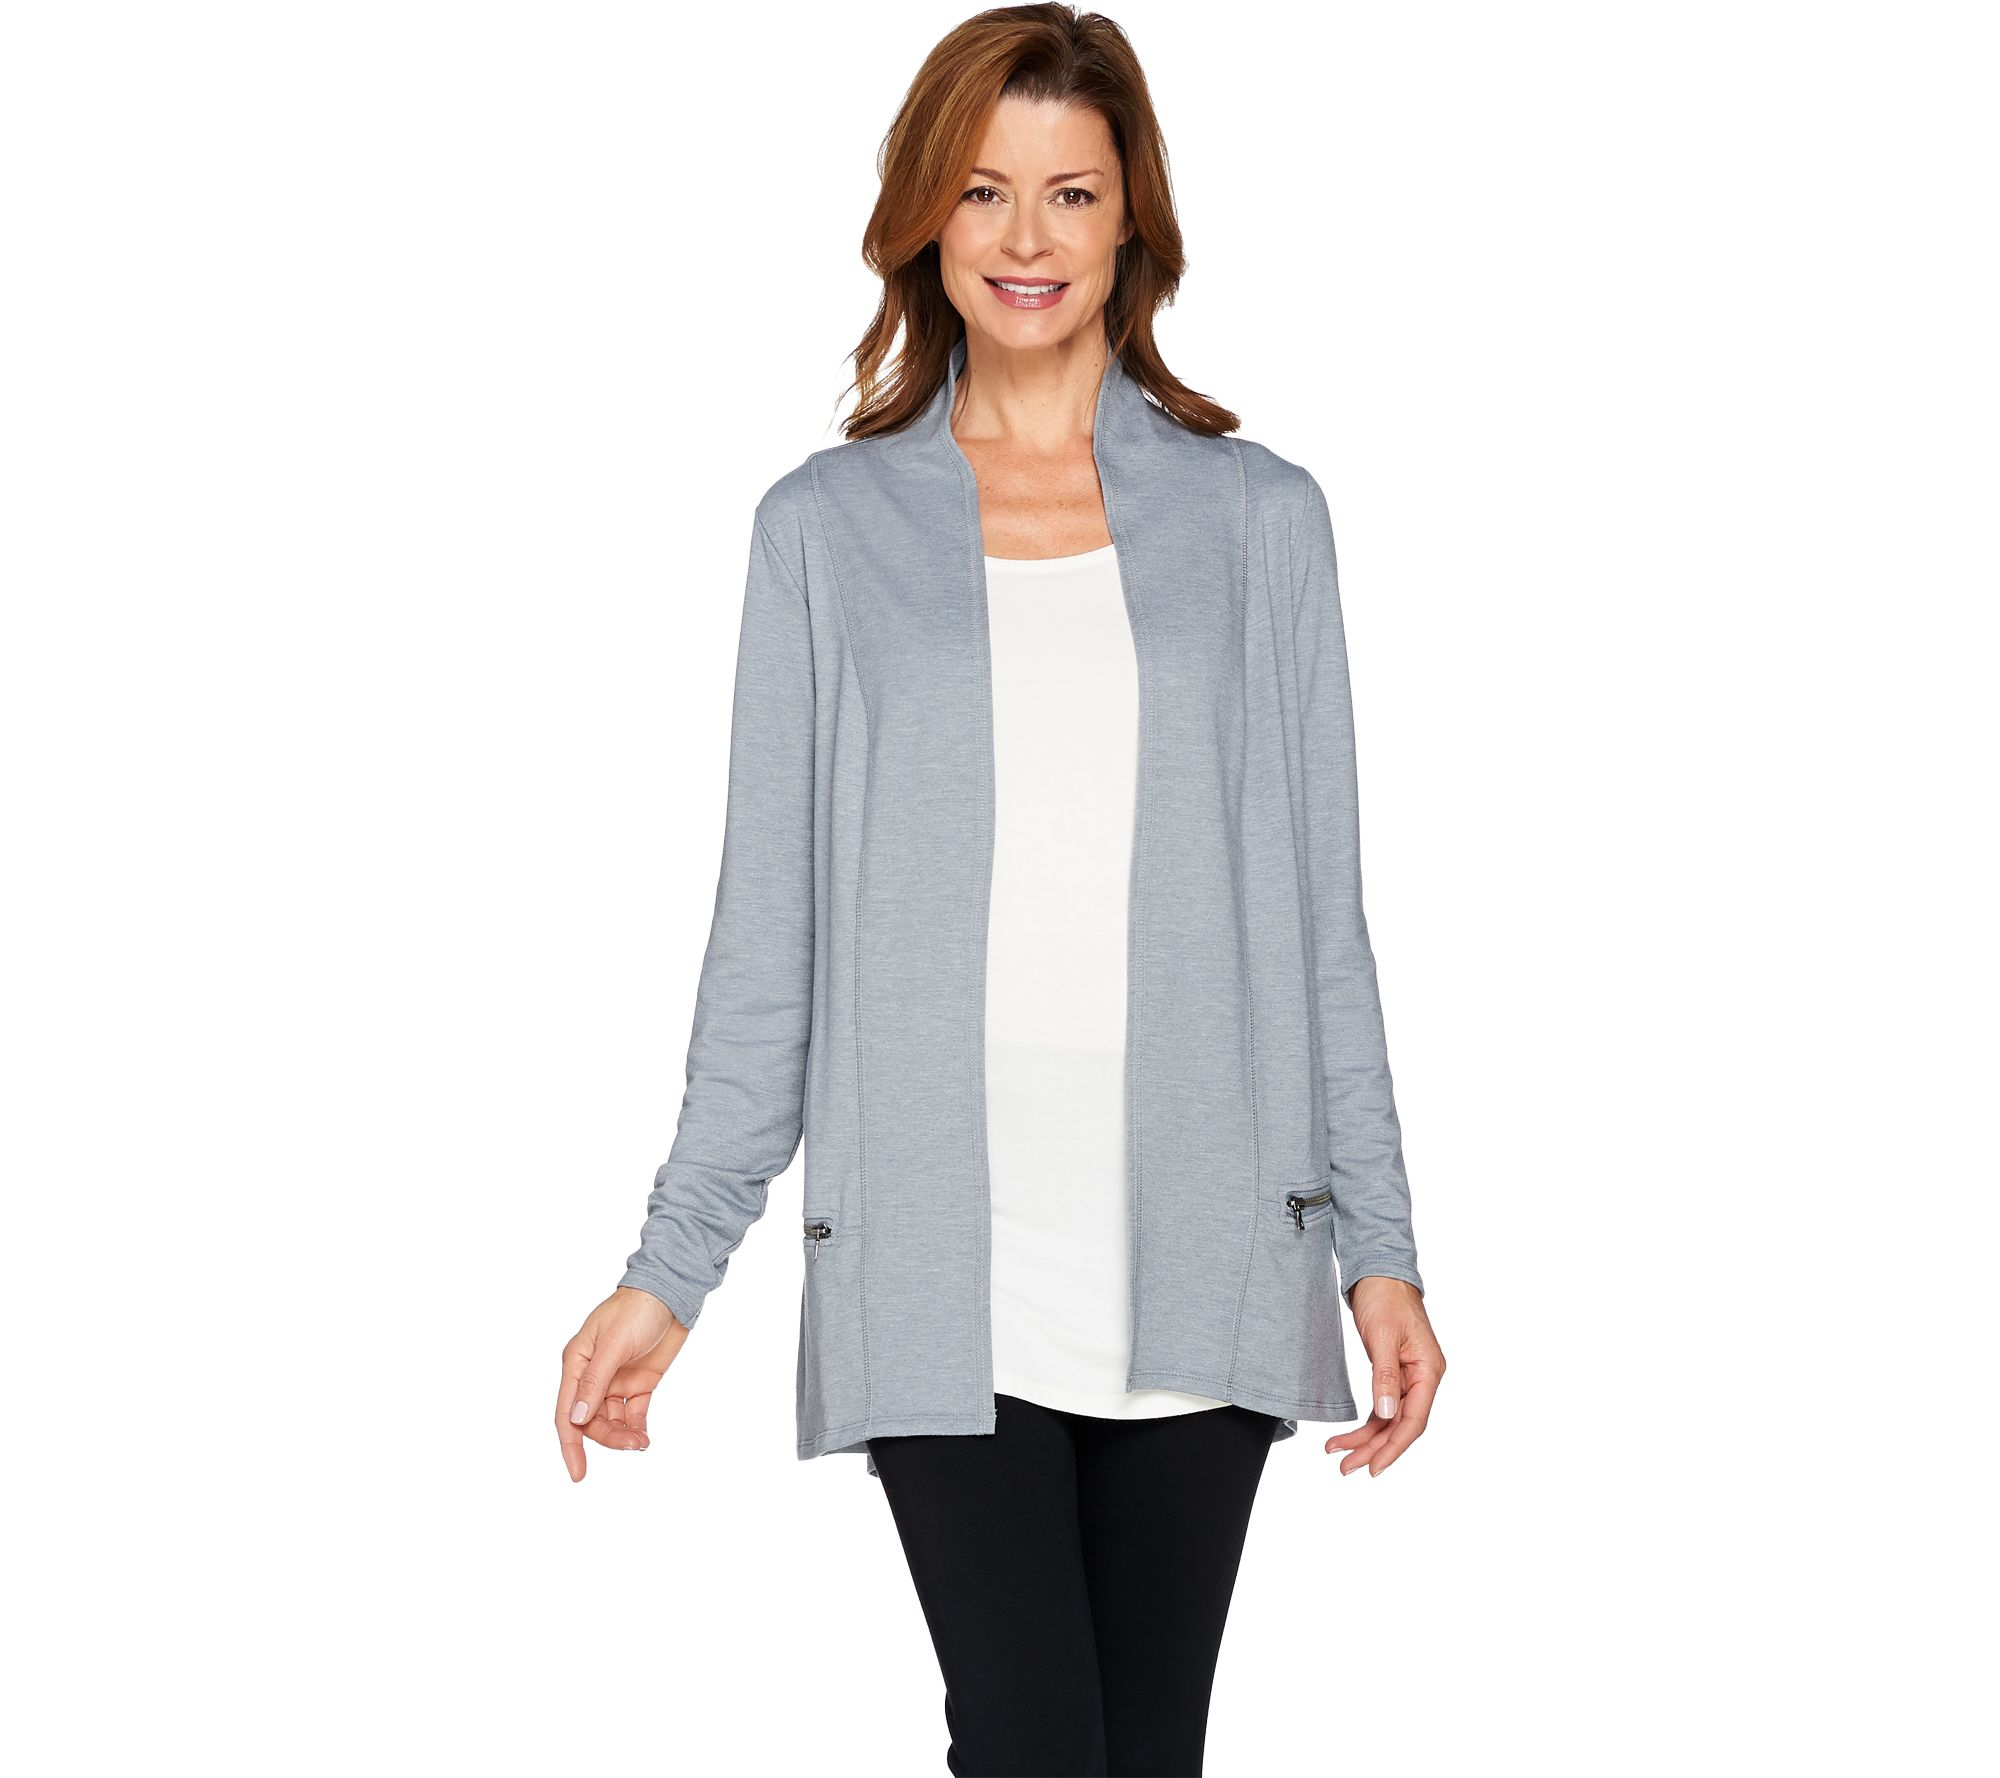 logo lounge by lori goldstein french terry cardigan with